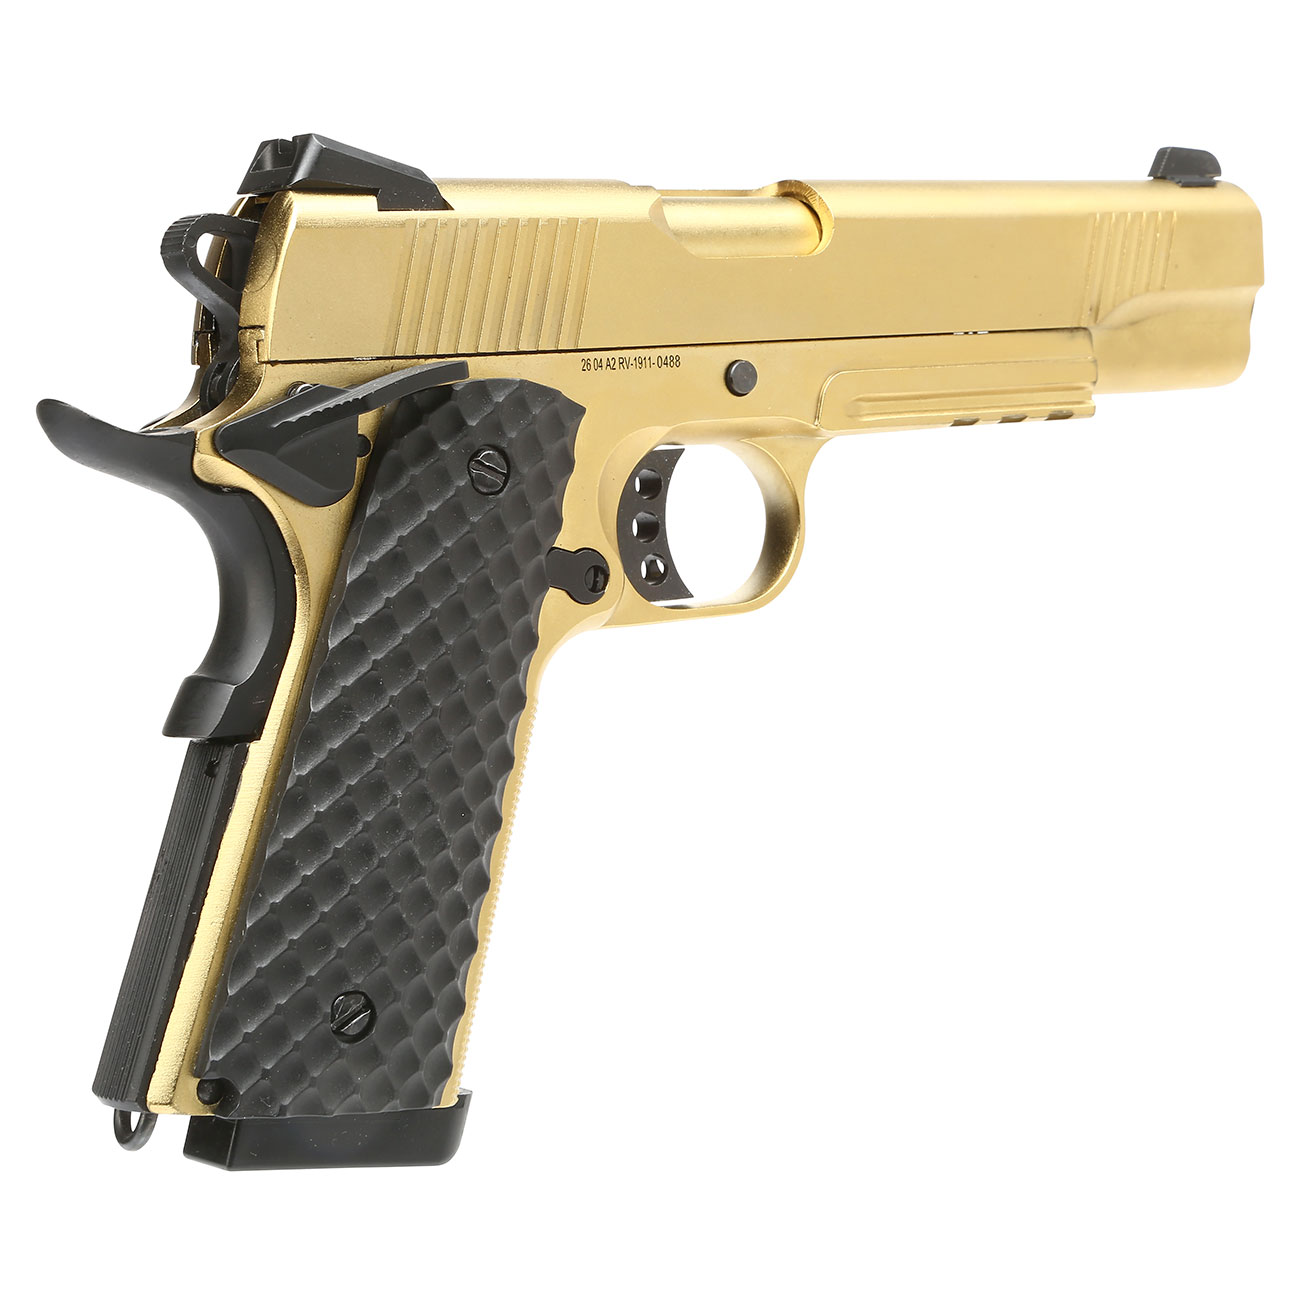 Nuprol Raven M1911 MEU Railed Vollmetall GBB 6mm BB gold 4